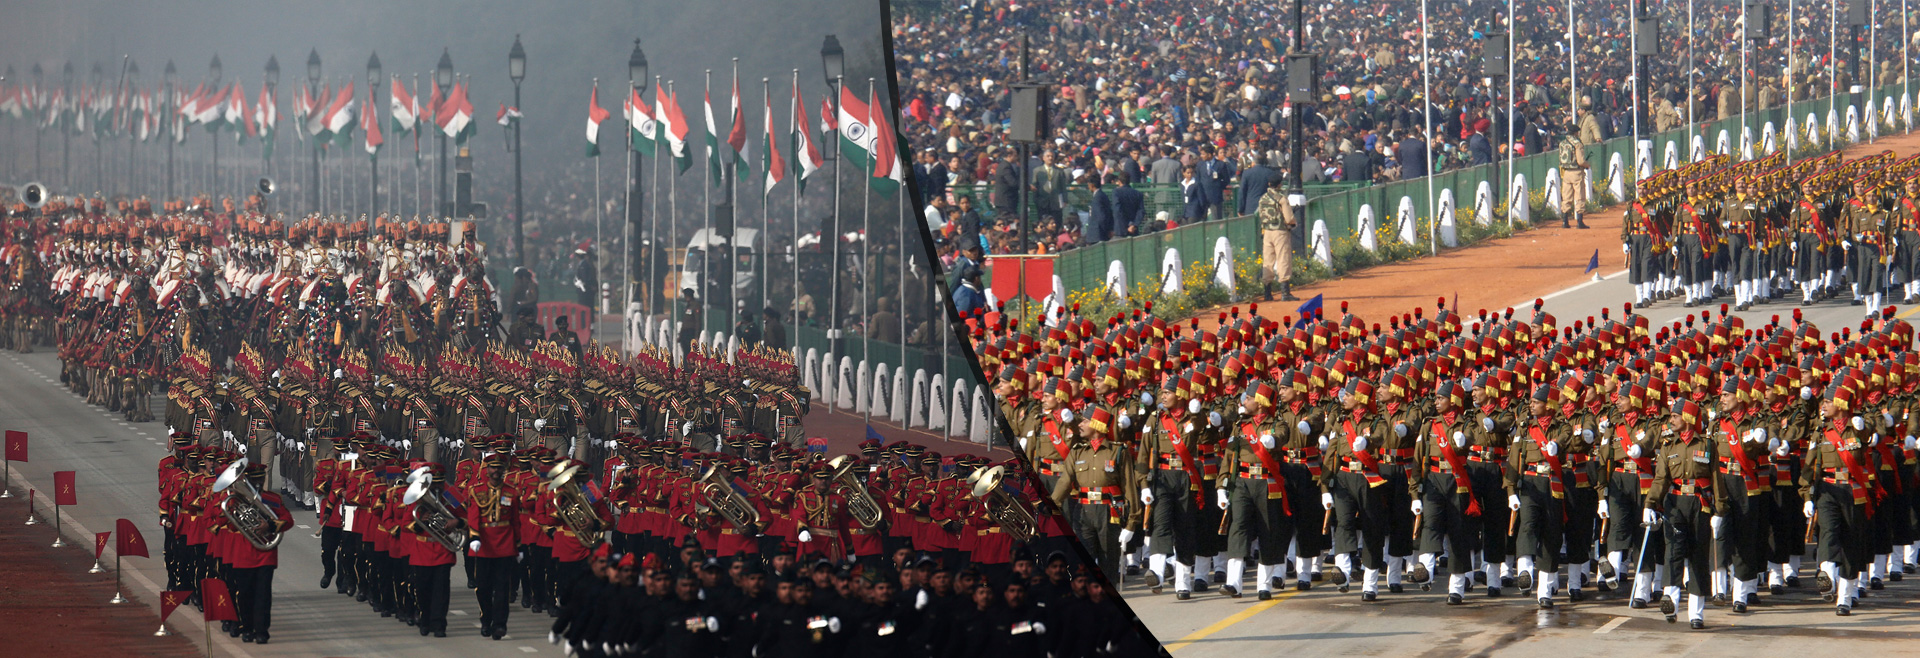 Republic Day Parade 2017